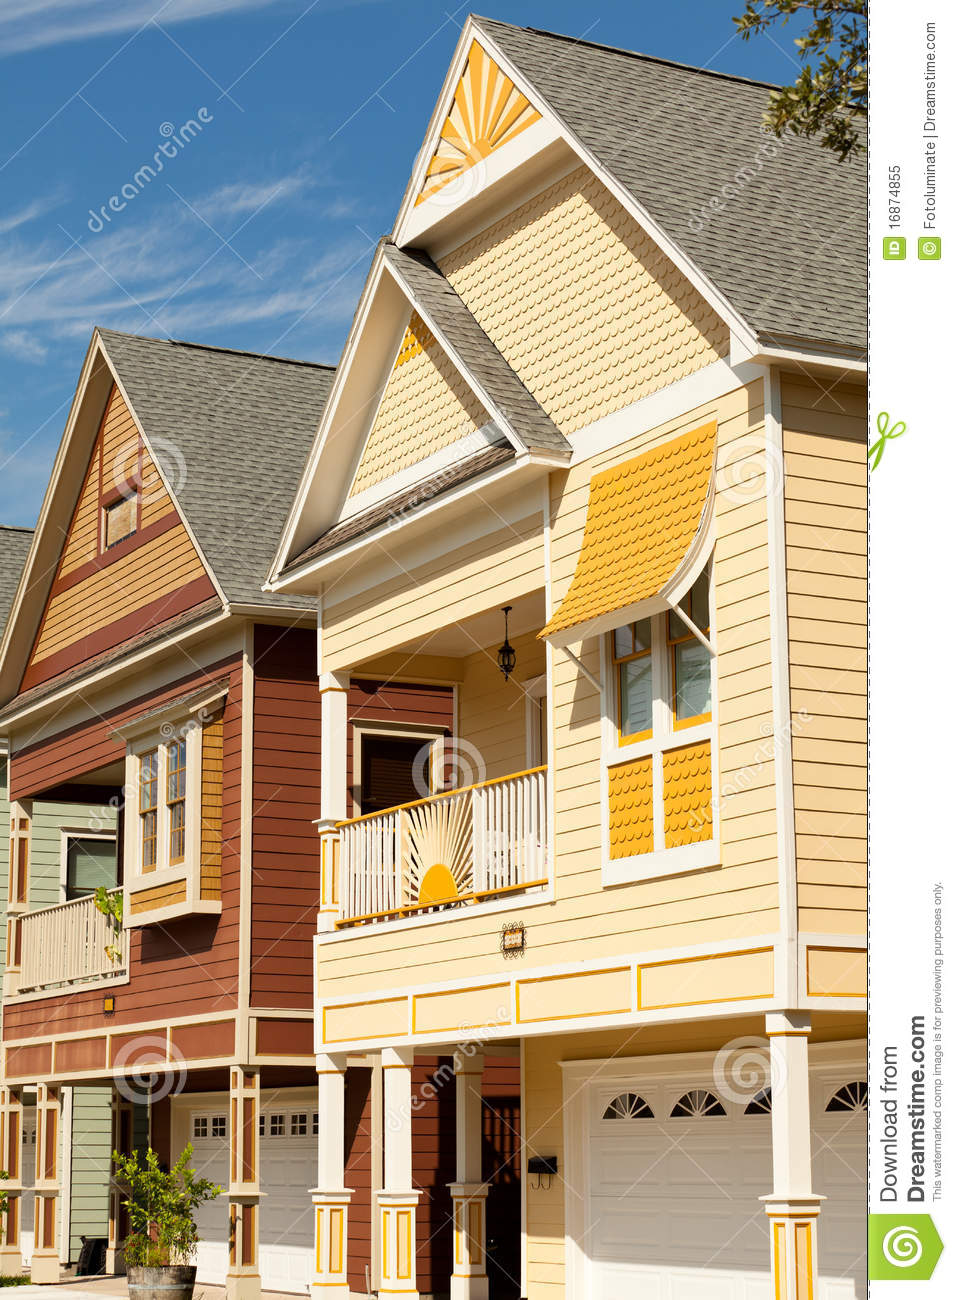 Victorian style homes royalty free stock photo image for Victorian style home builders